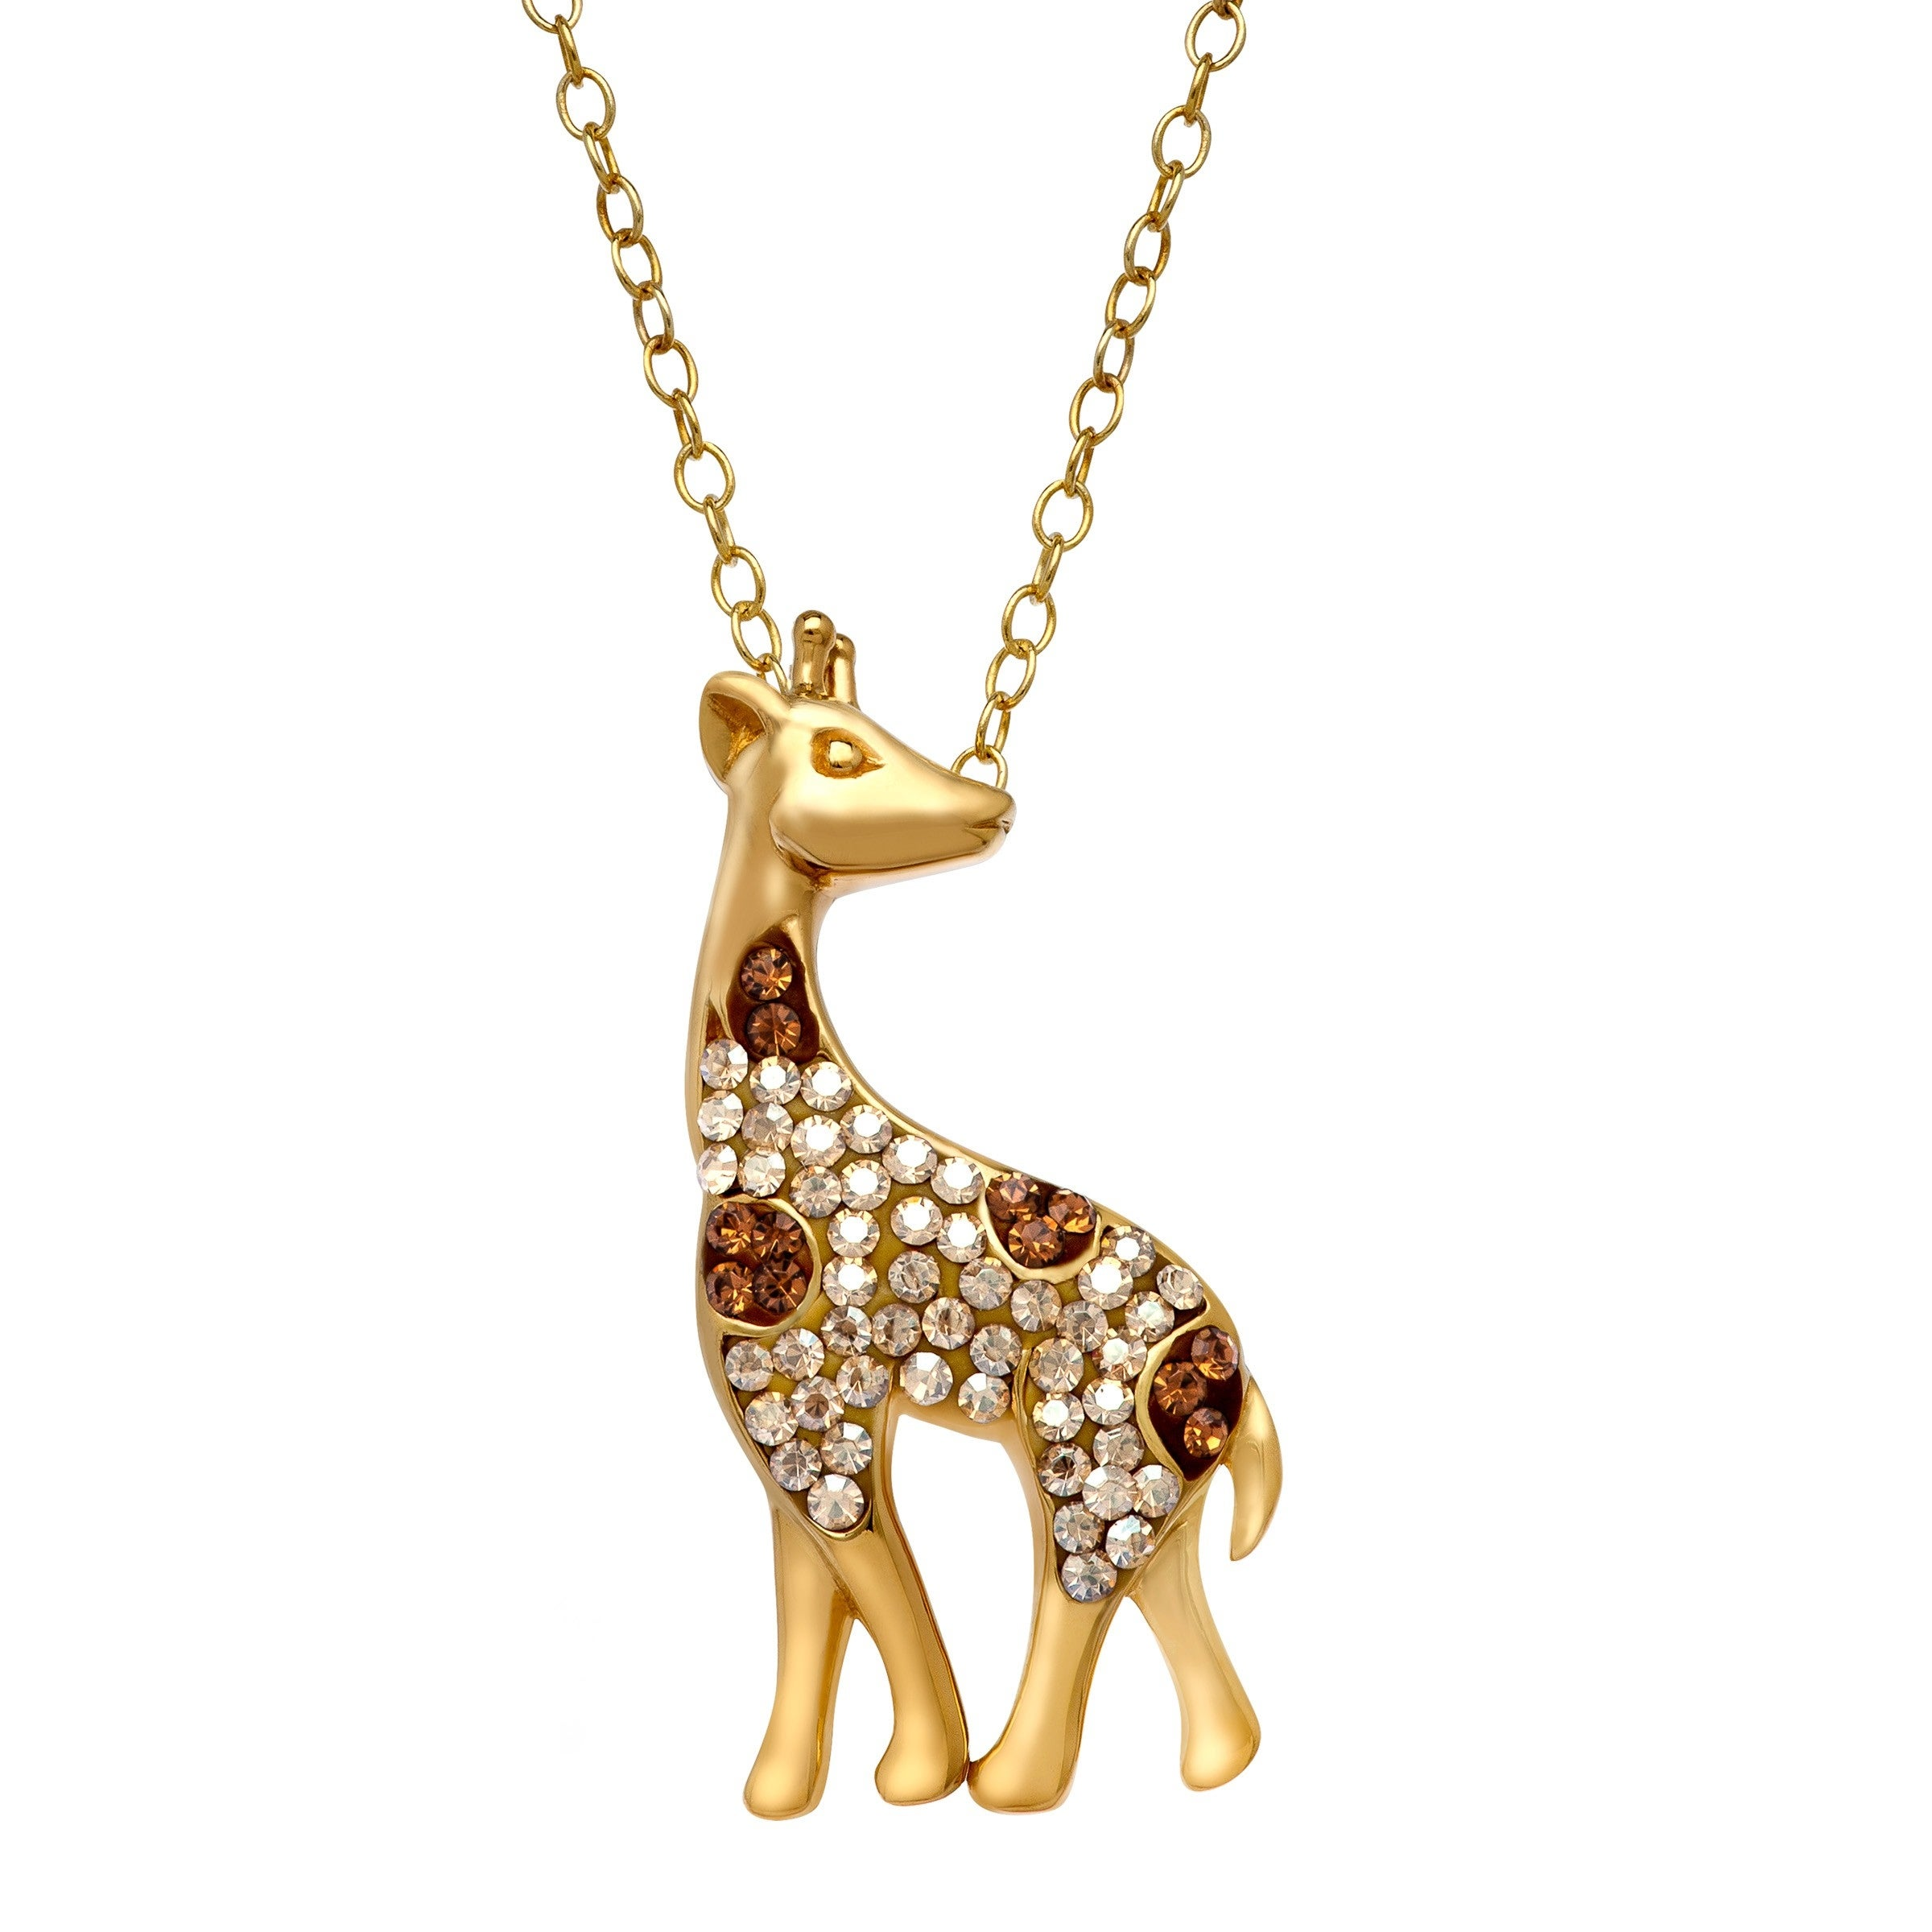 handmade ltd pendant products jewelry necklace giraffe